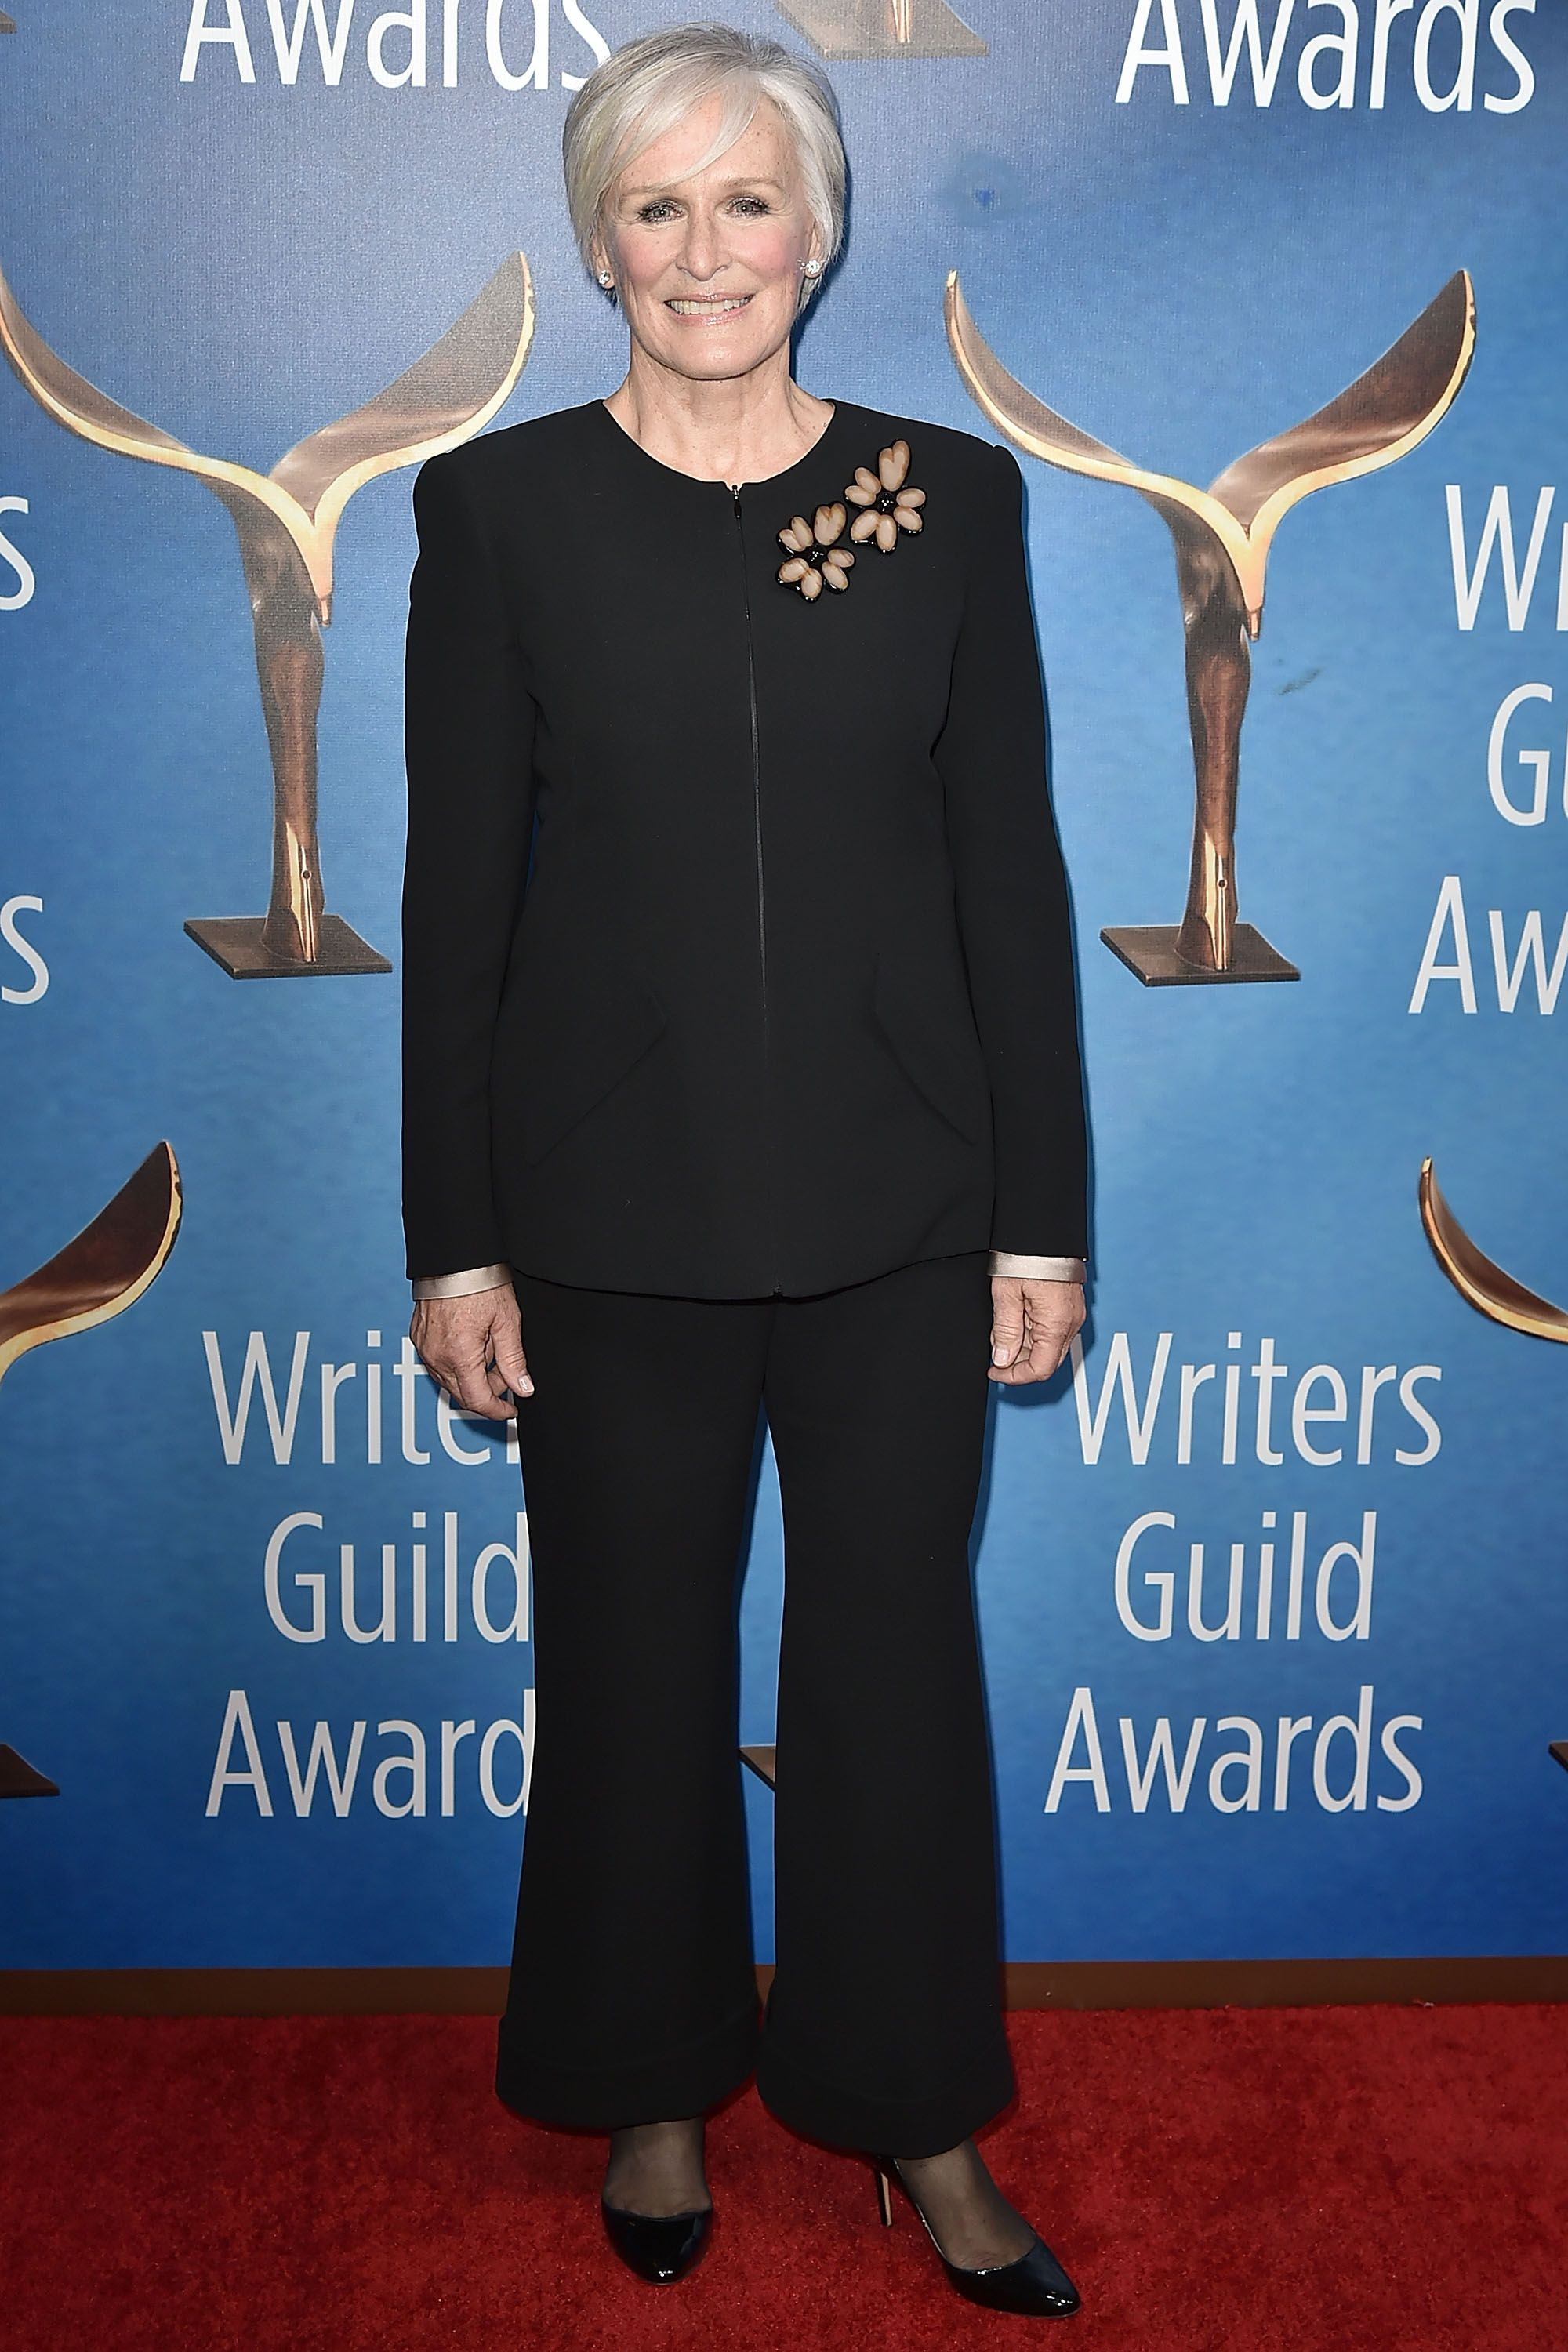 Close looked elegant in a black zip-up jacket with two embroidered flowers at the 2018 Writers Guild Awards in Los Angeles.